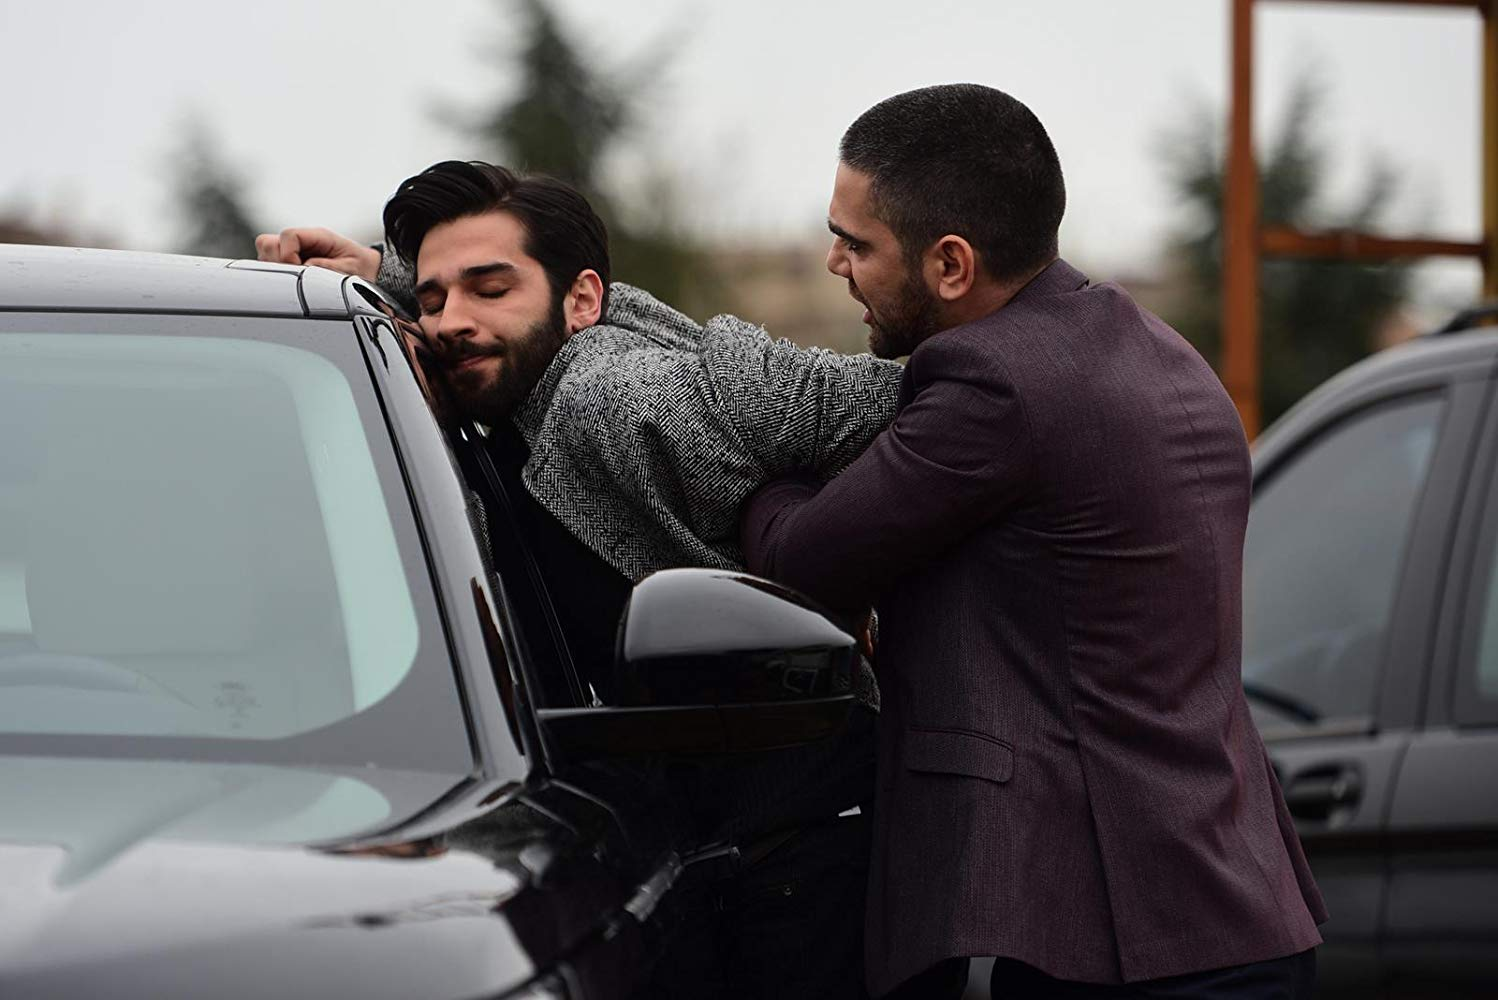 Kadir Dogulu and Baran Bölükbasi in Vuslat (2019)